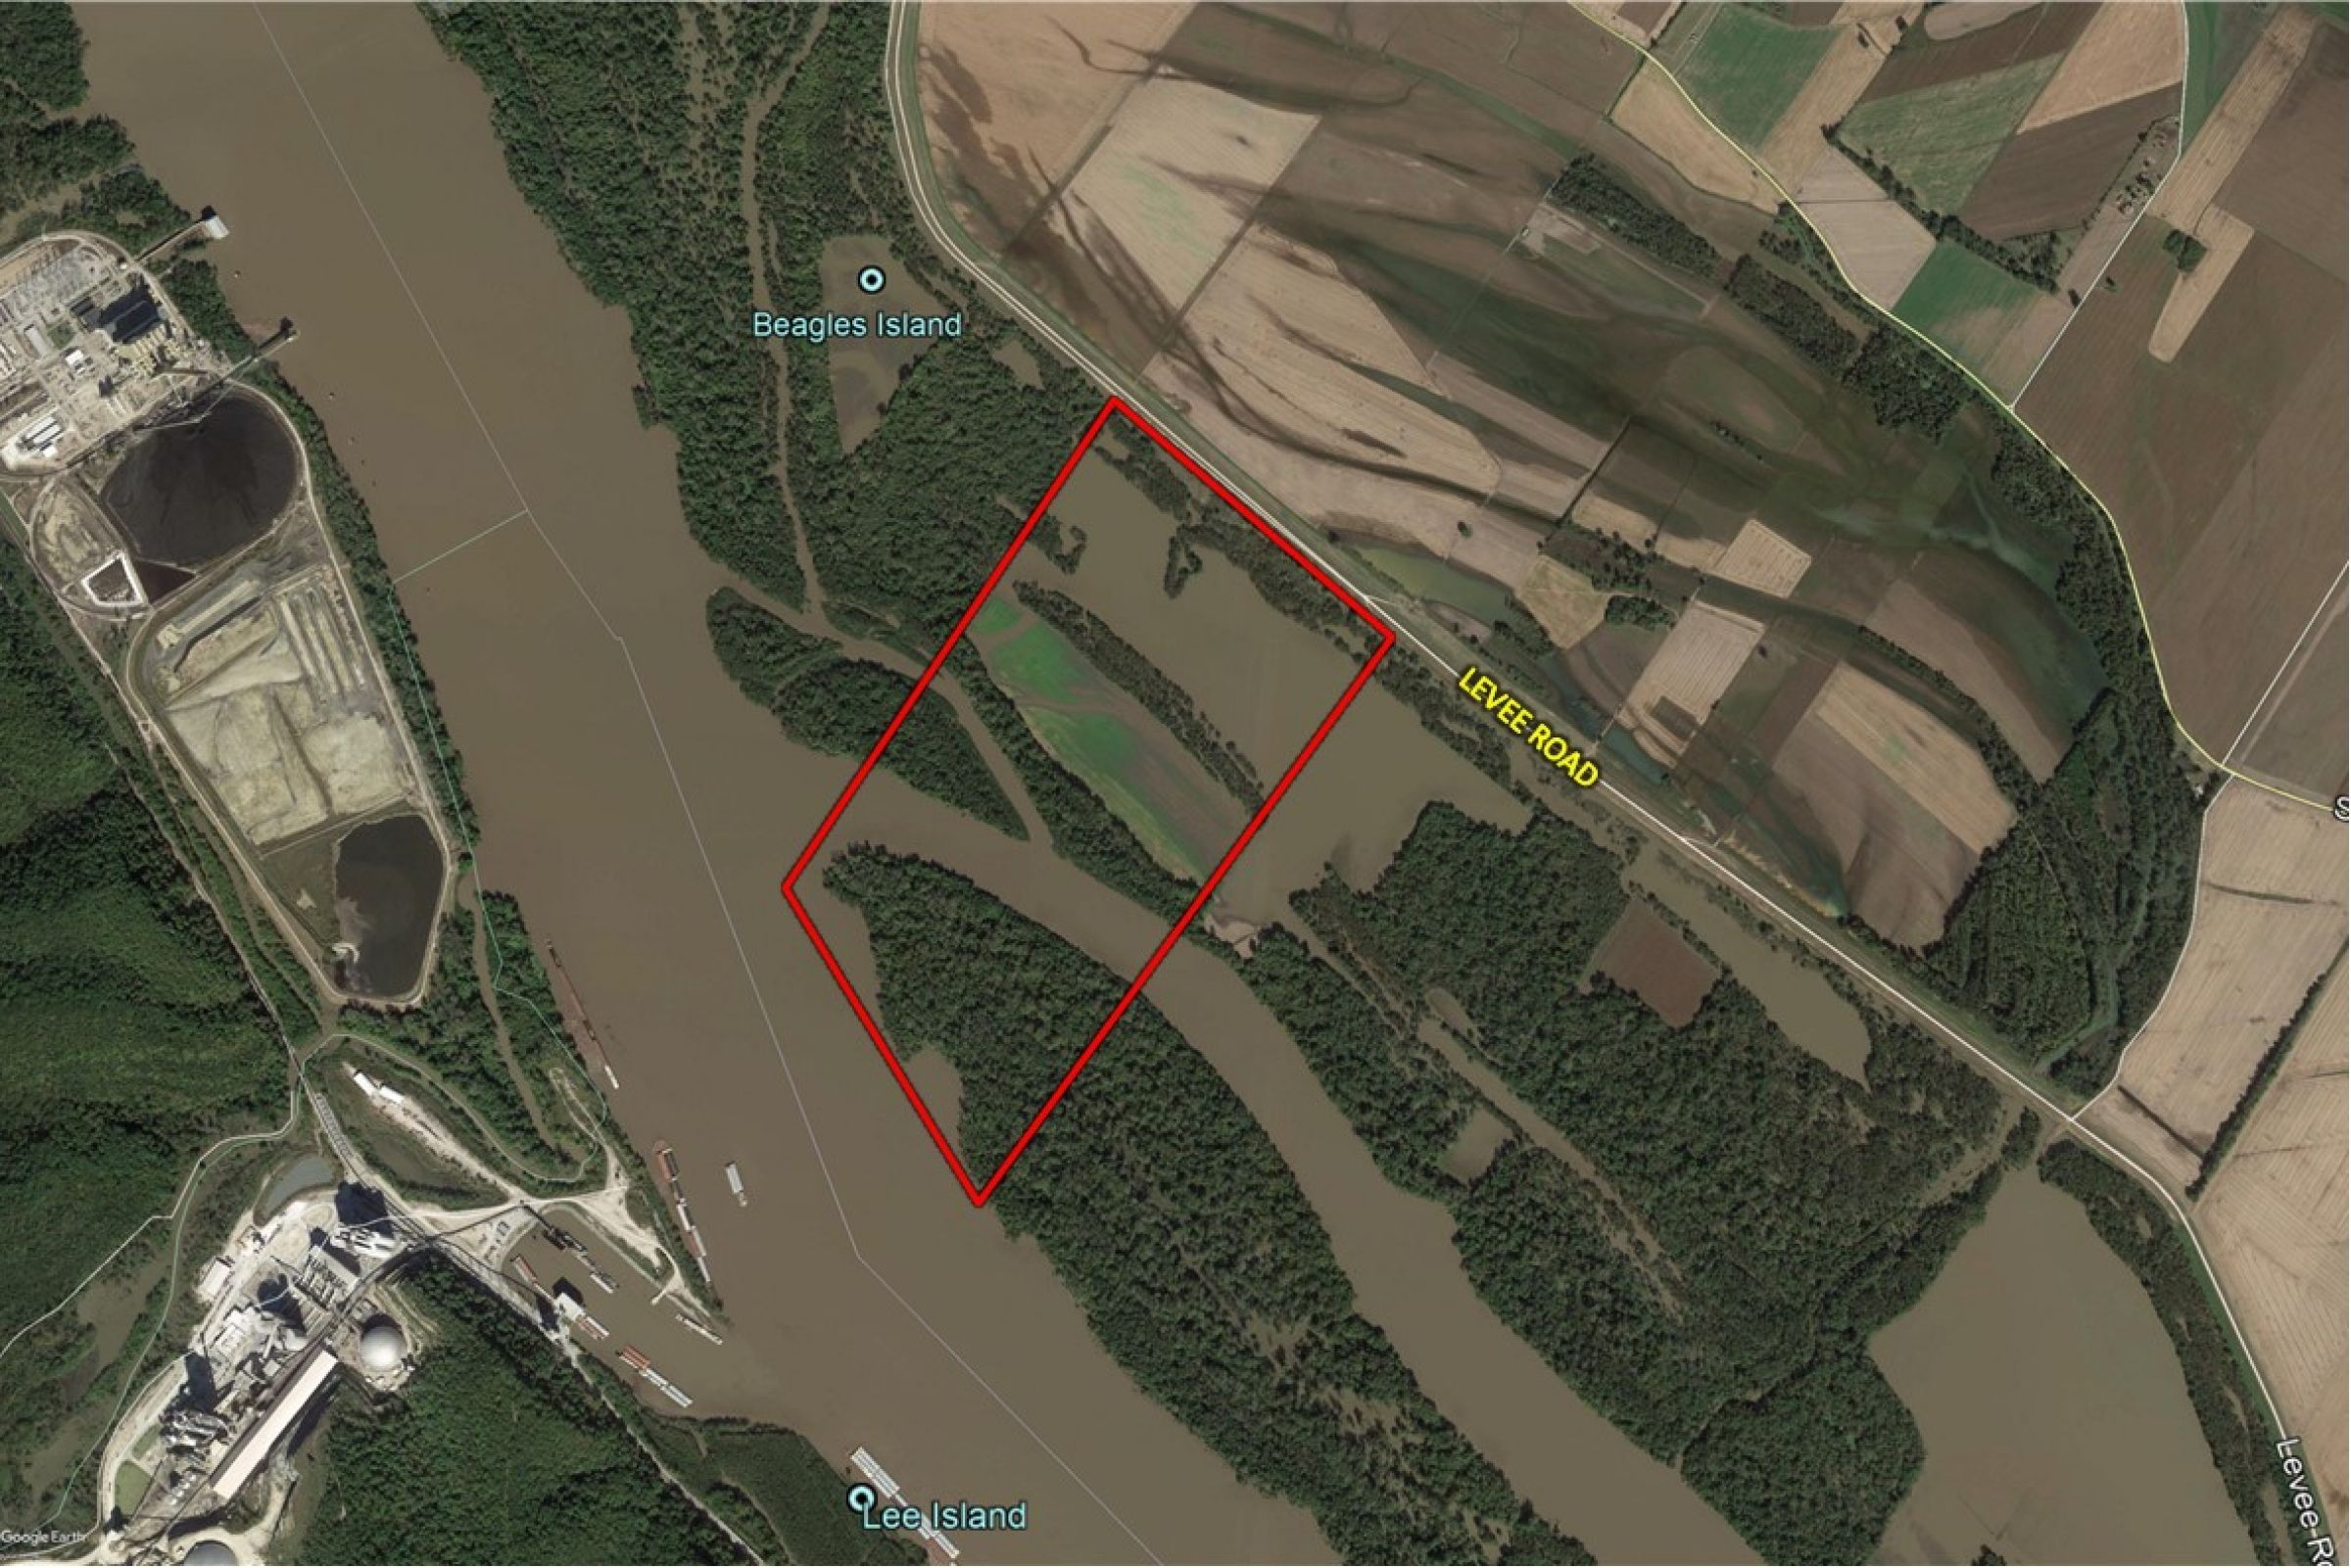 land-monroe-county-illinois-289-acres-listing-number-15266-0-2020-11-20-204315.jpg